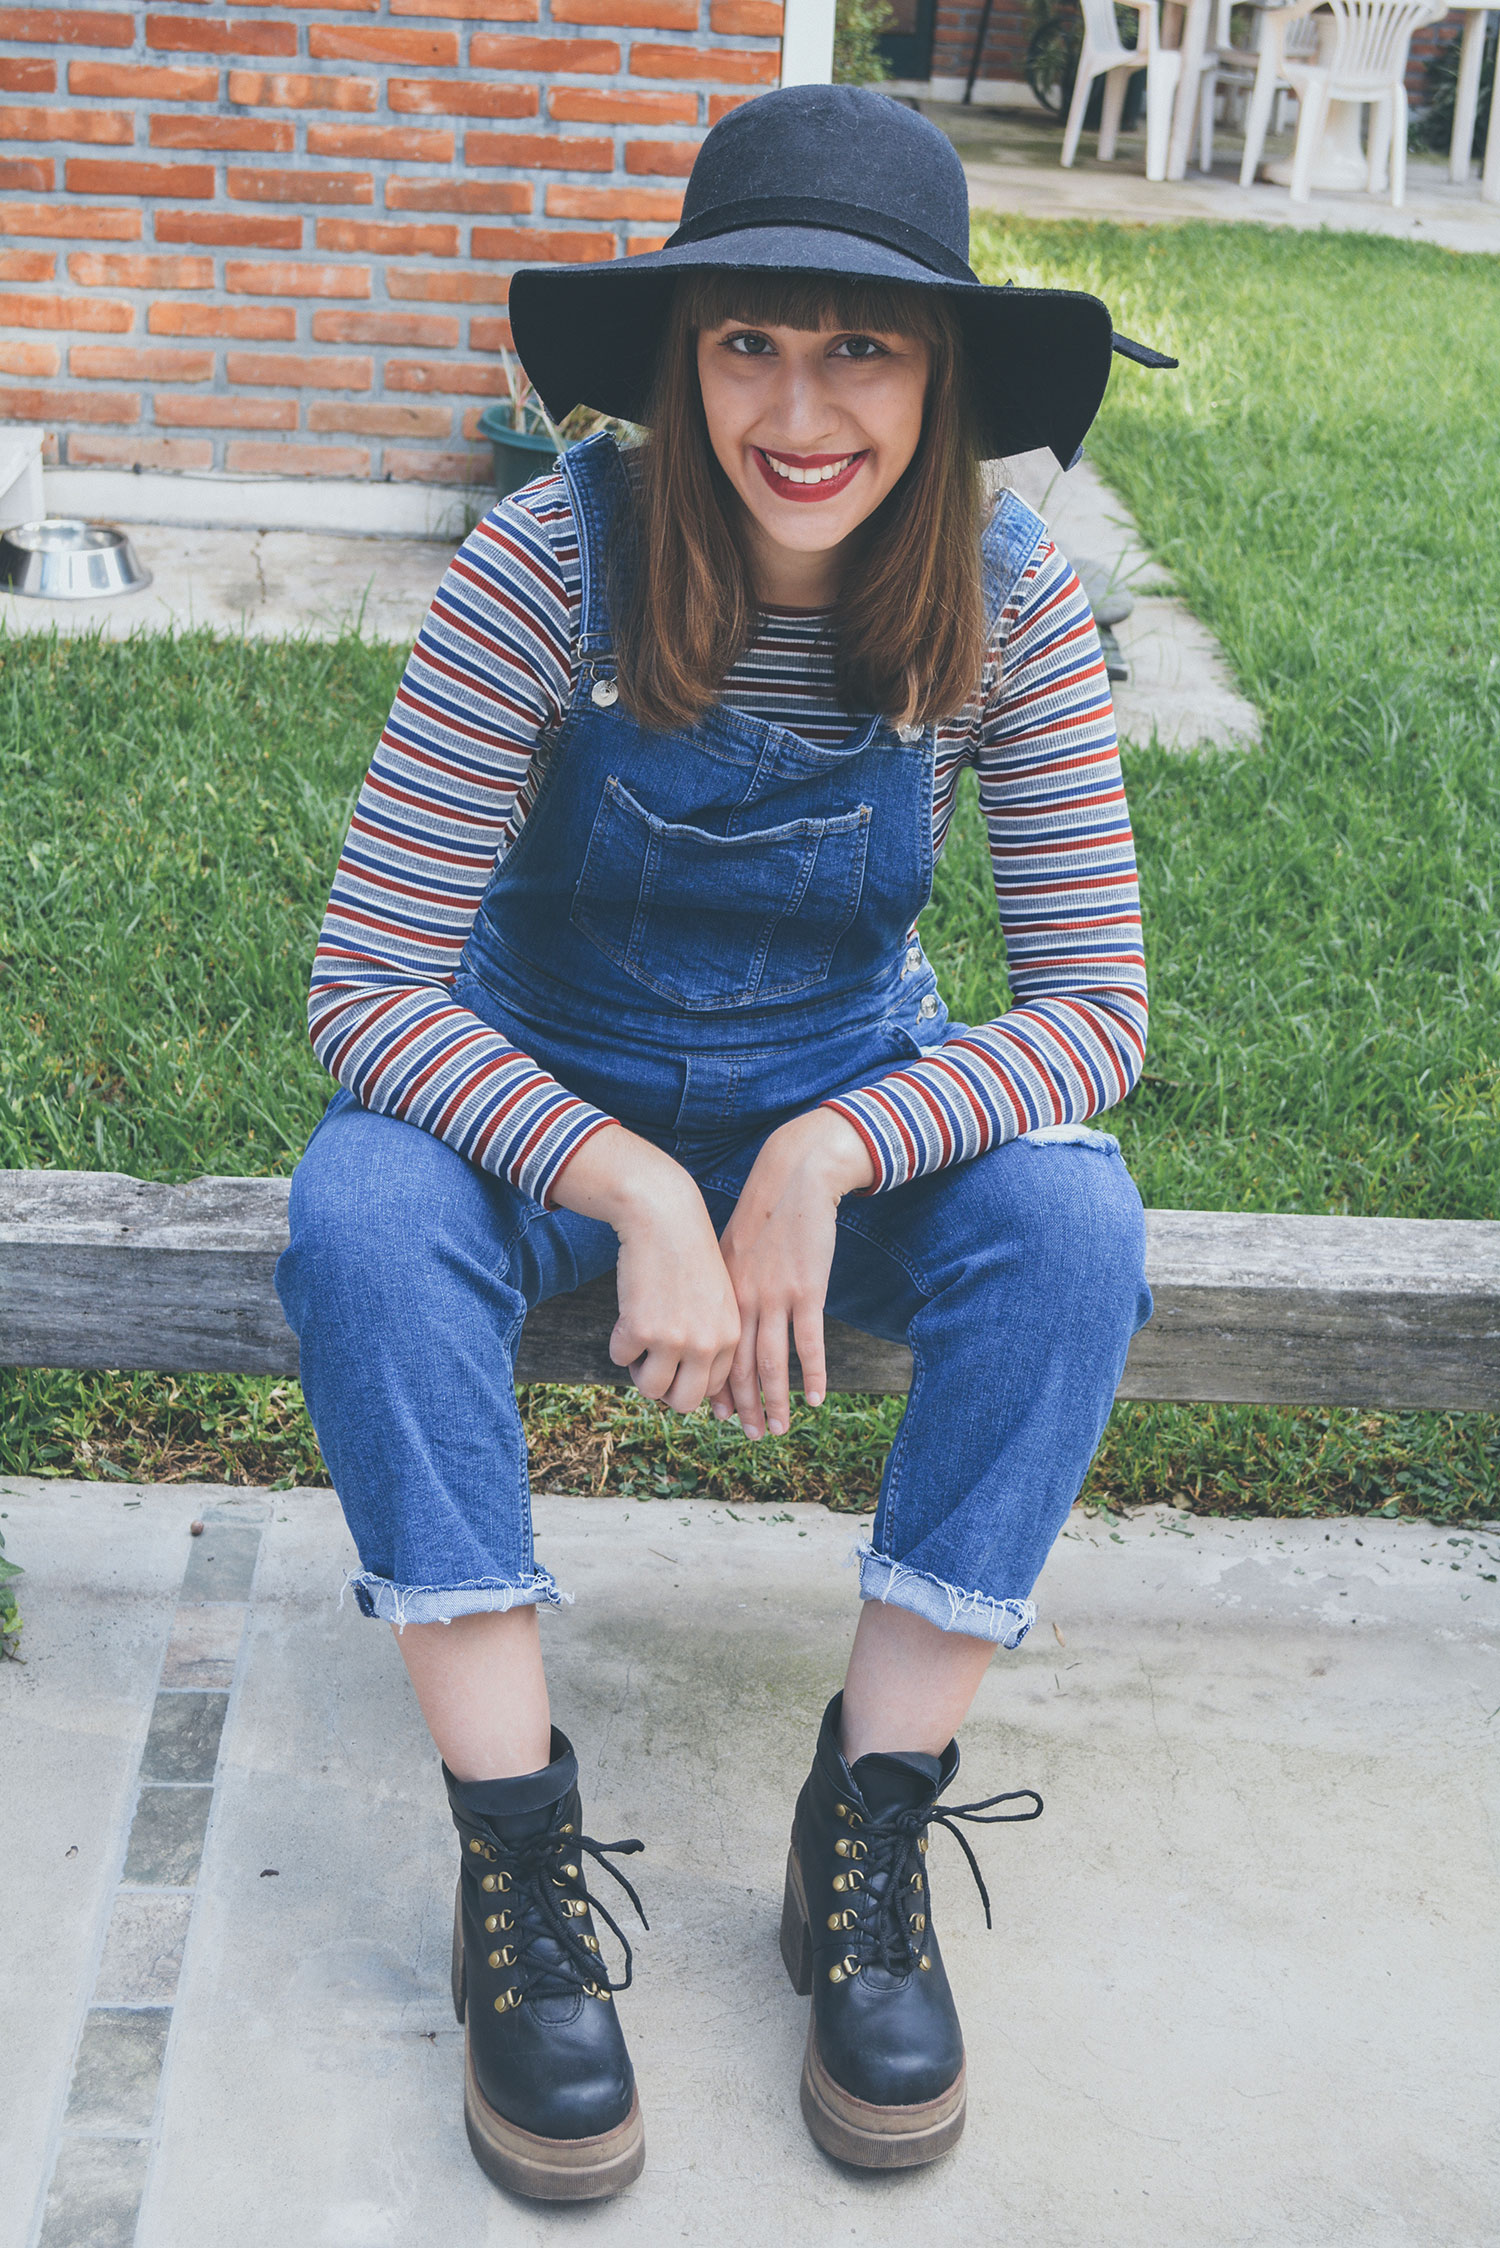 fashion, fashionista, moda, blogger argentina, fashion blogger, fashion blogger argentina, blogger, lifestyle blogger, thoughts, ootd, outfit, style, look, outfit of the day, lookbook, what i wore, trends, ss2018, spring summer 2018